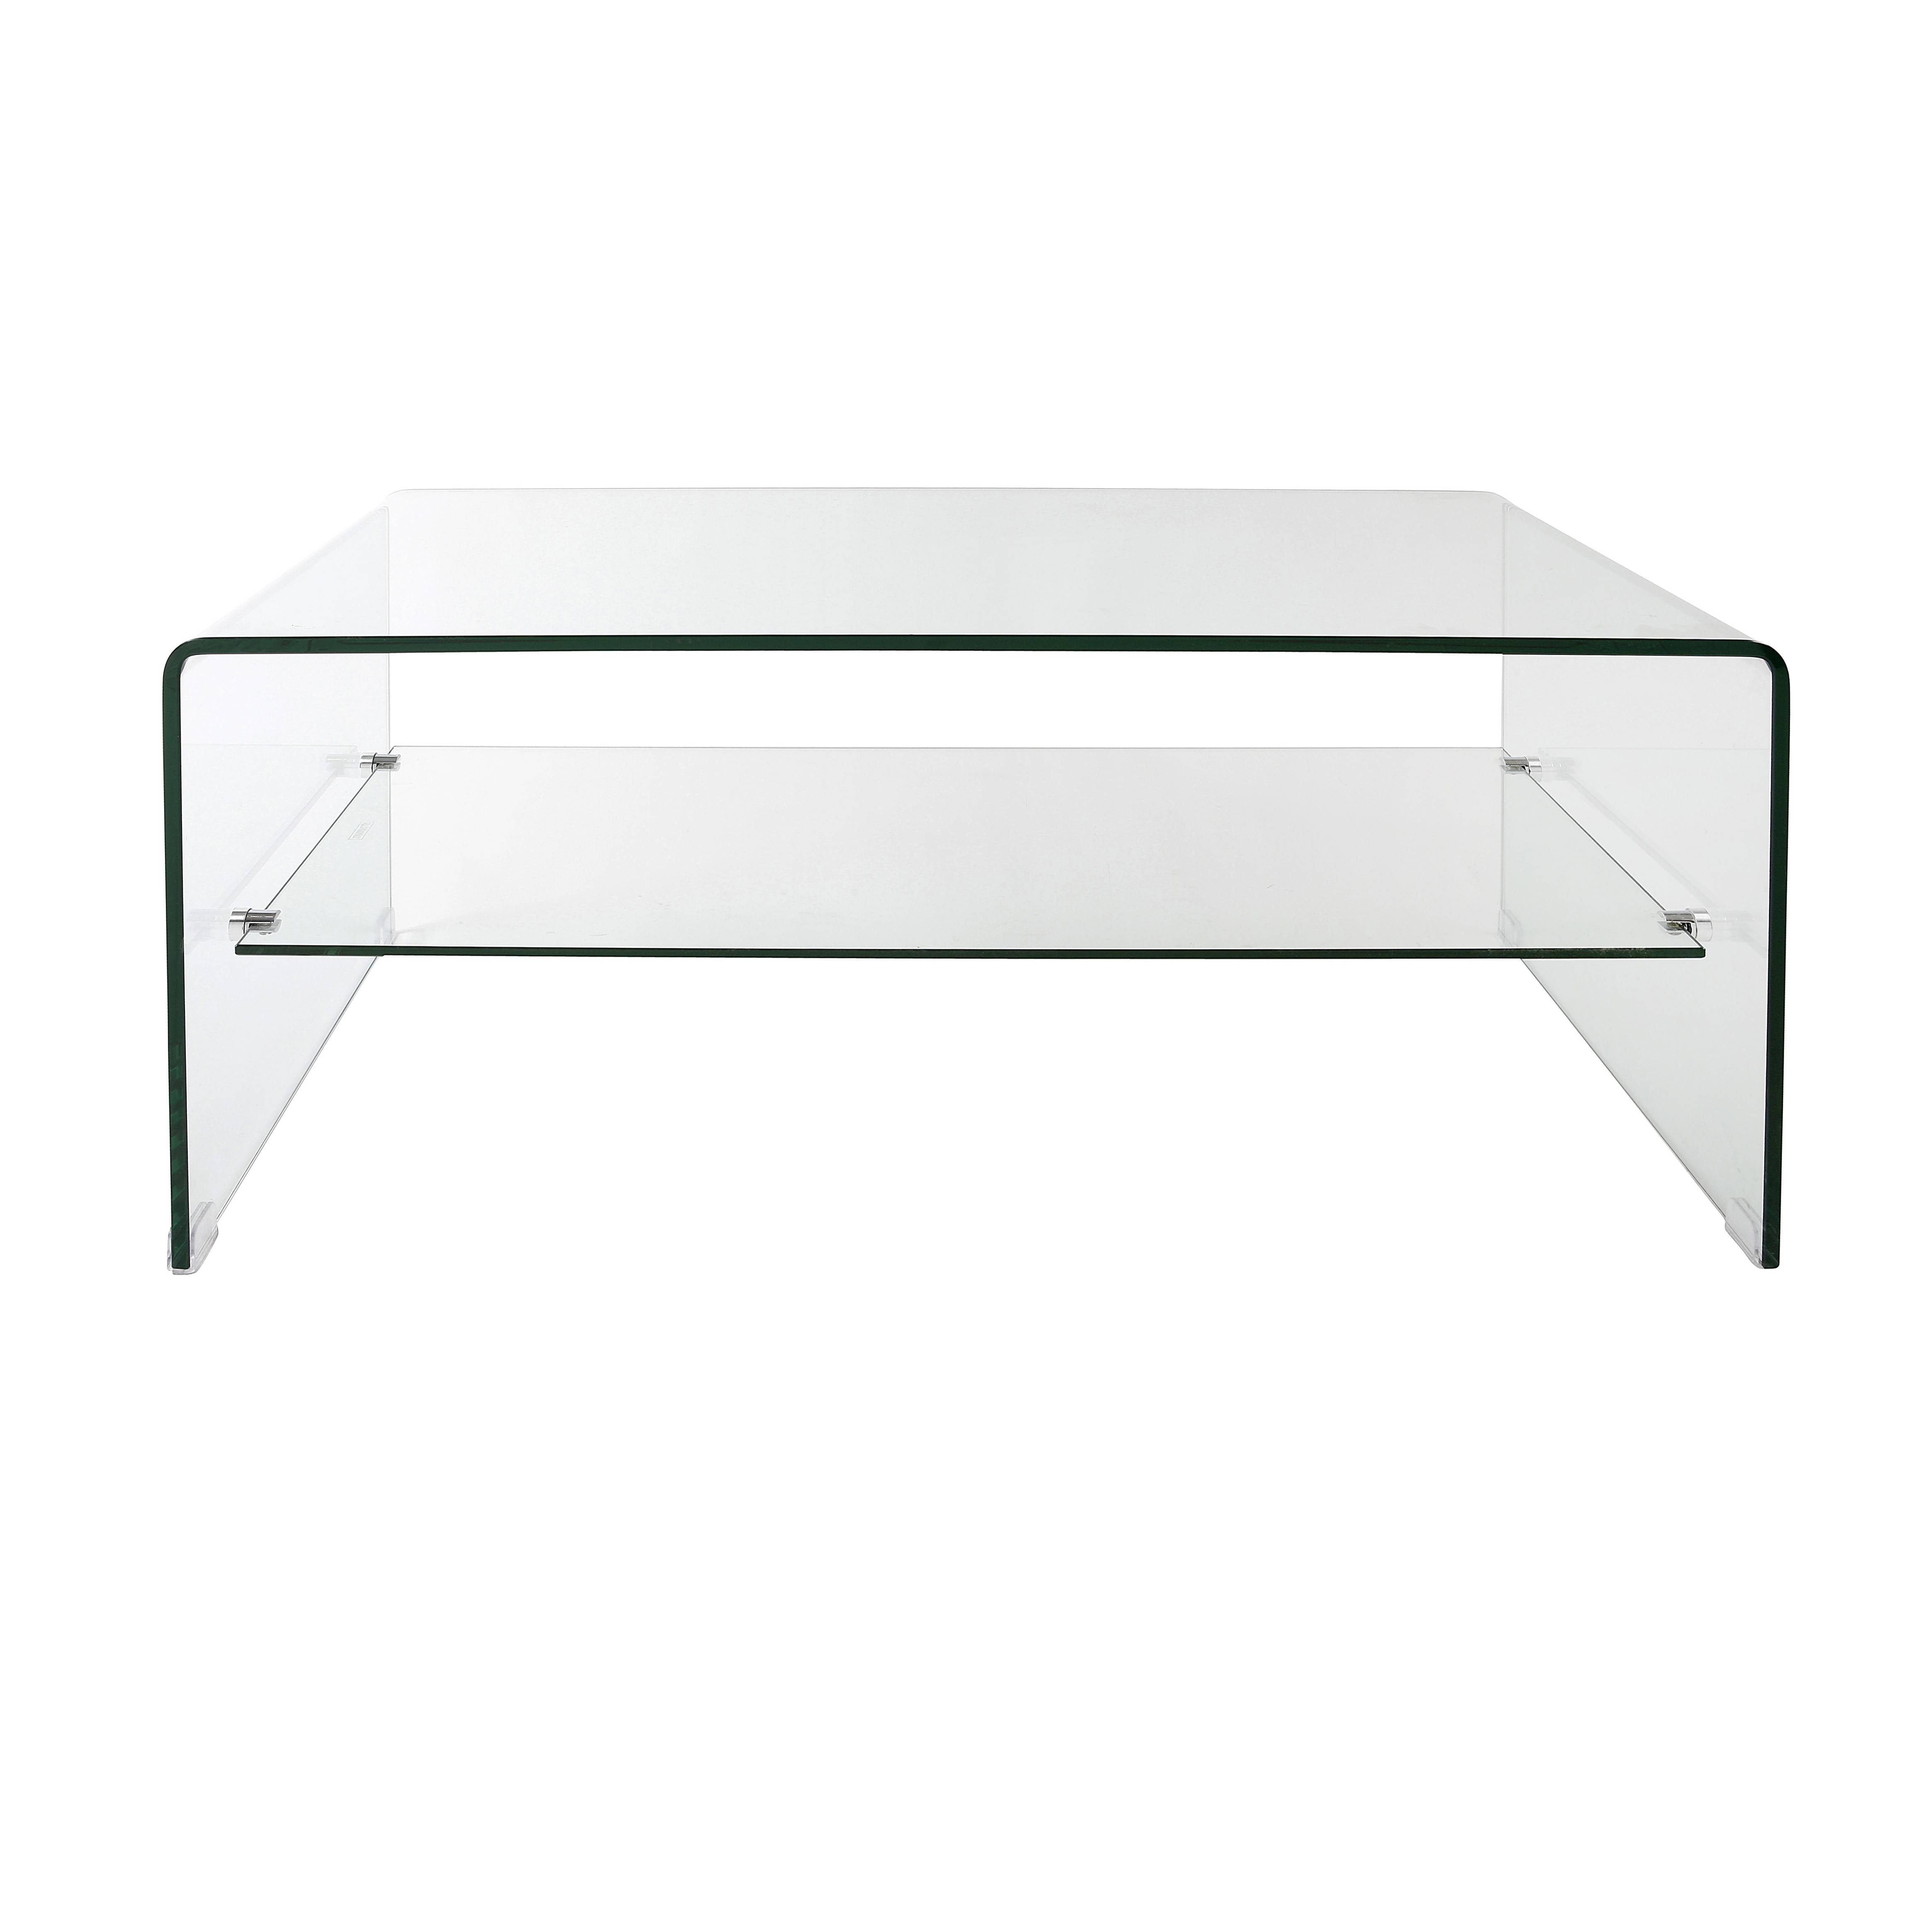 Coffee Table: Chic Glass Modern Coffee Table Ideas Contemporary for Glass Coffee Tables With Shelf (Image 6 of 30)